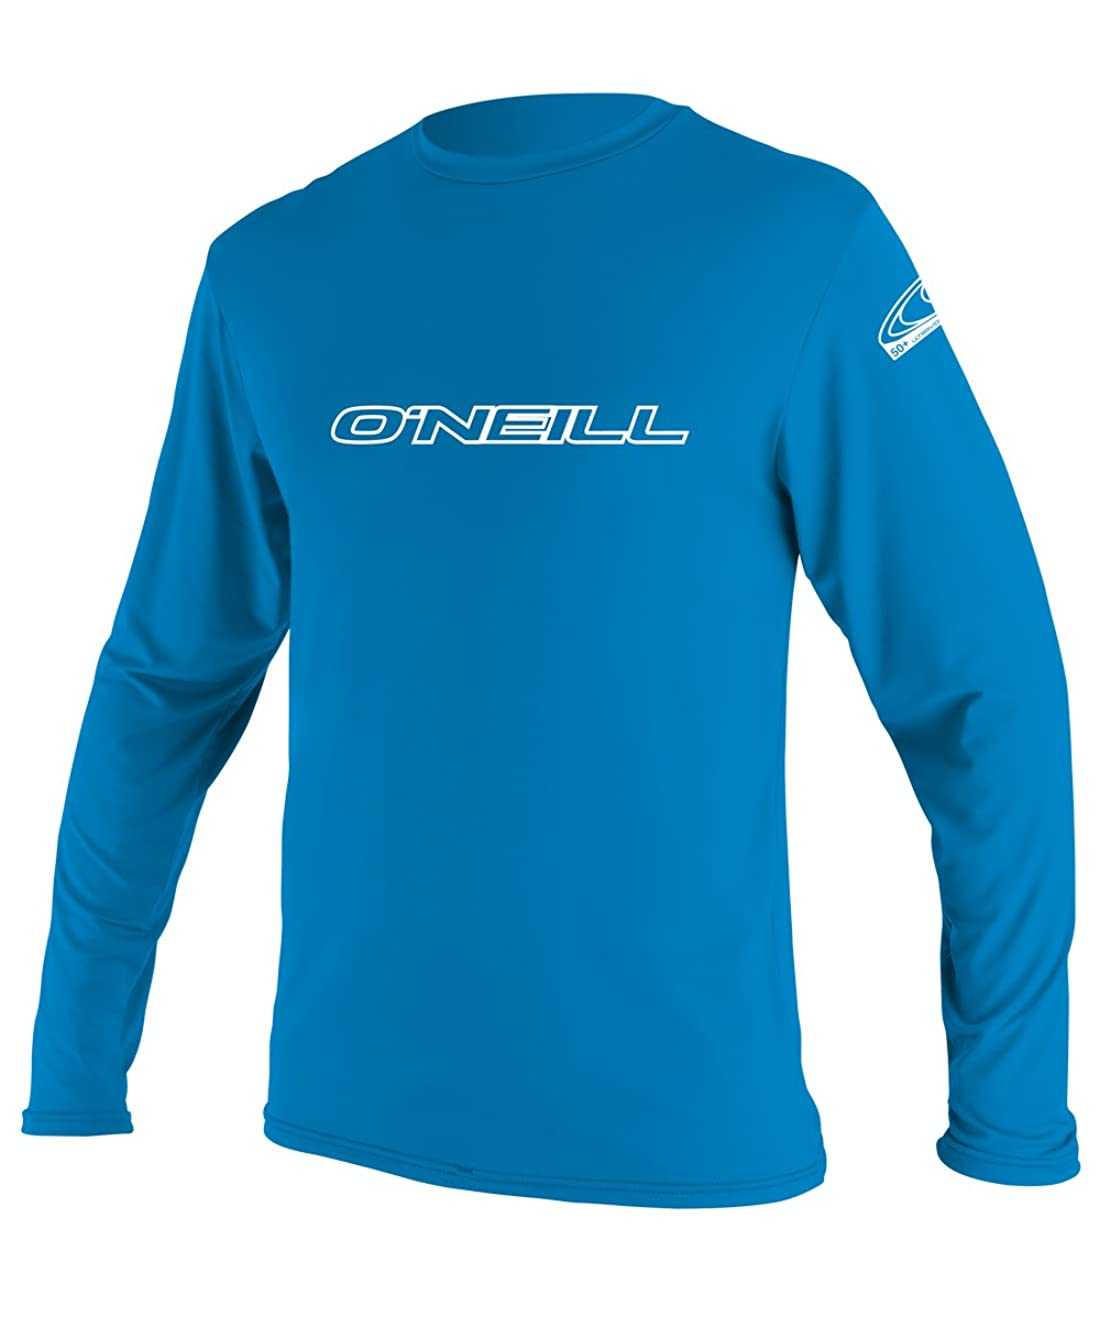 O'Neill Youth Basic Skins UPF 50+ Long Sleeve Sun Shirt